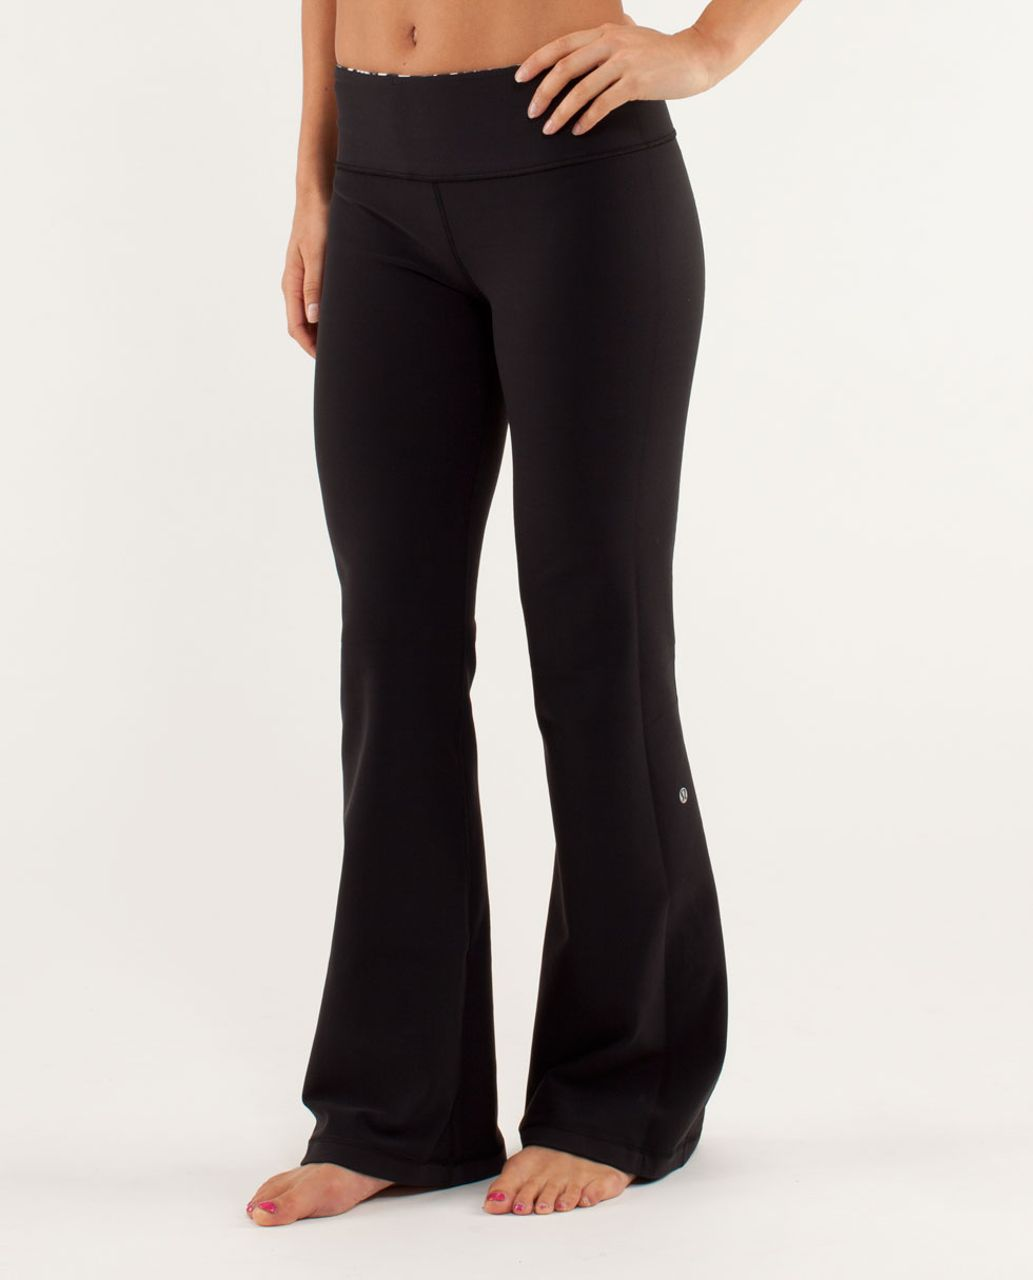 Lululemon Groove Pant *Slim (Regular) - Black / Laceoflage Polar Cream Black / Polar Cream